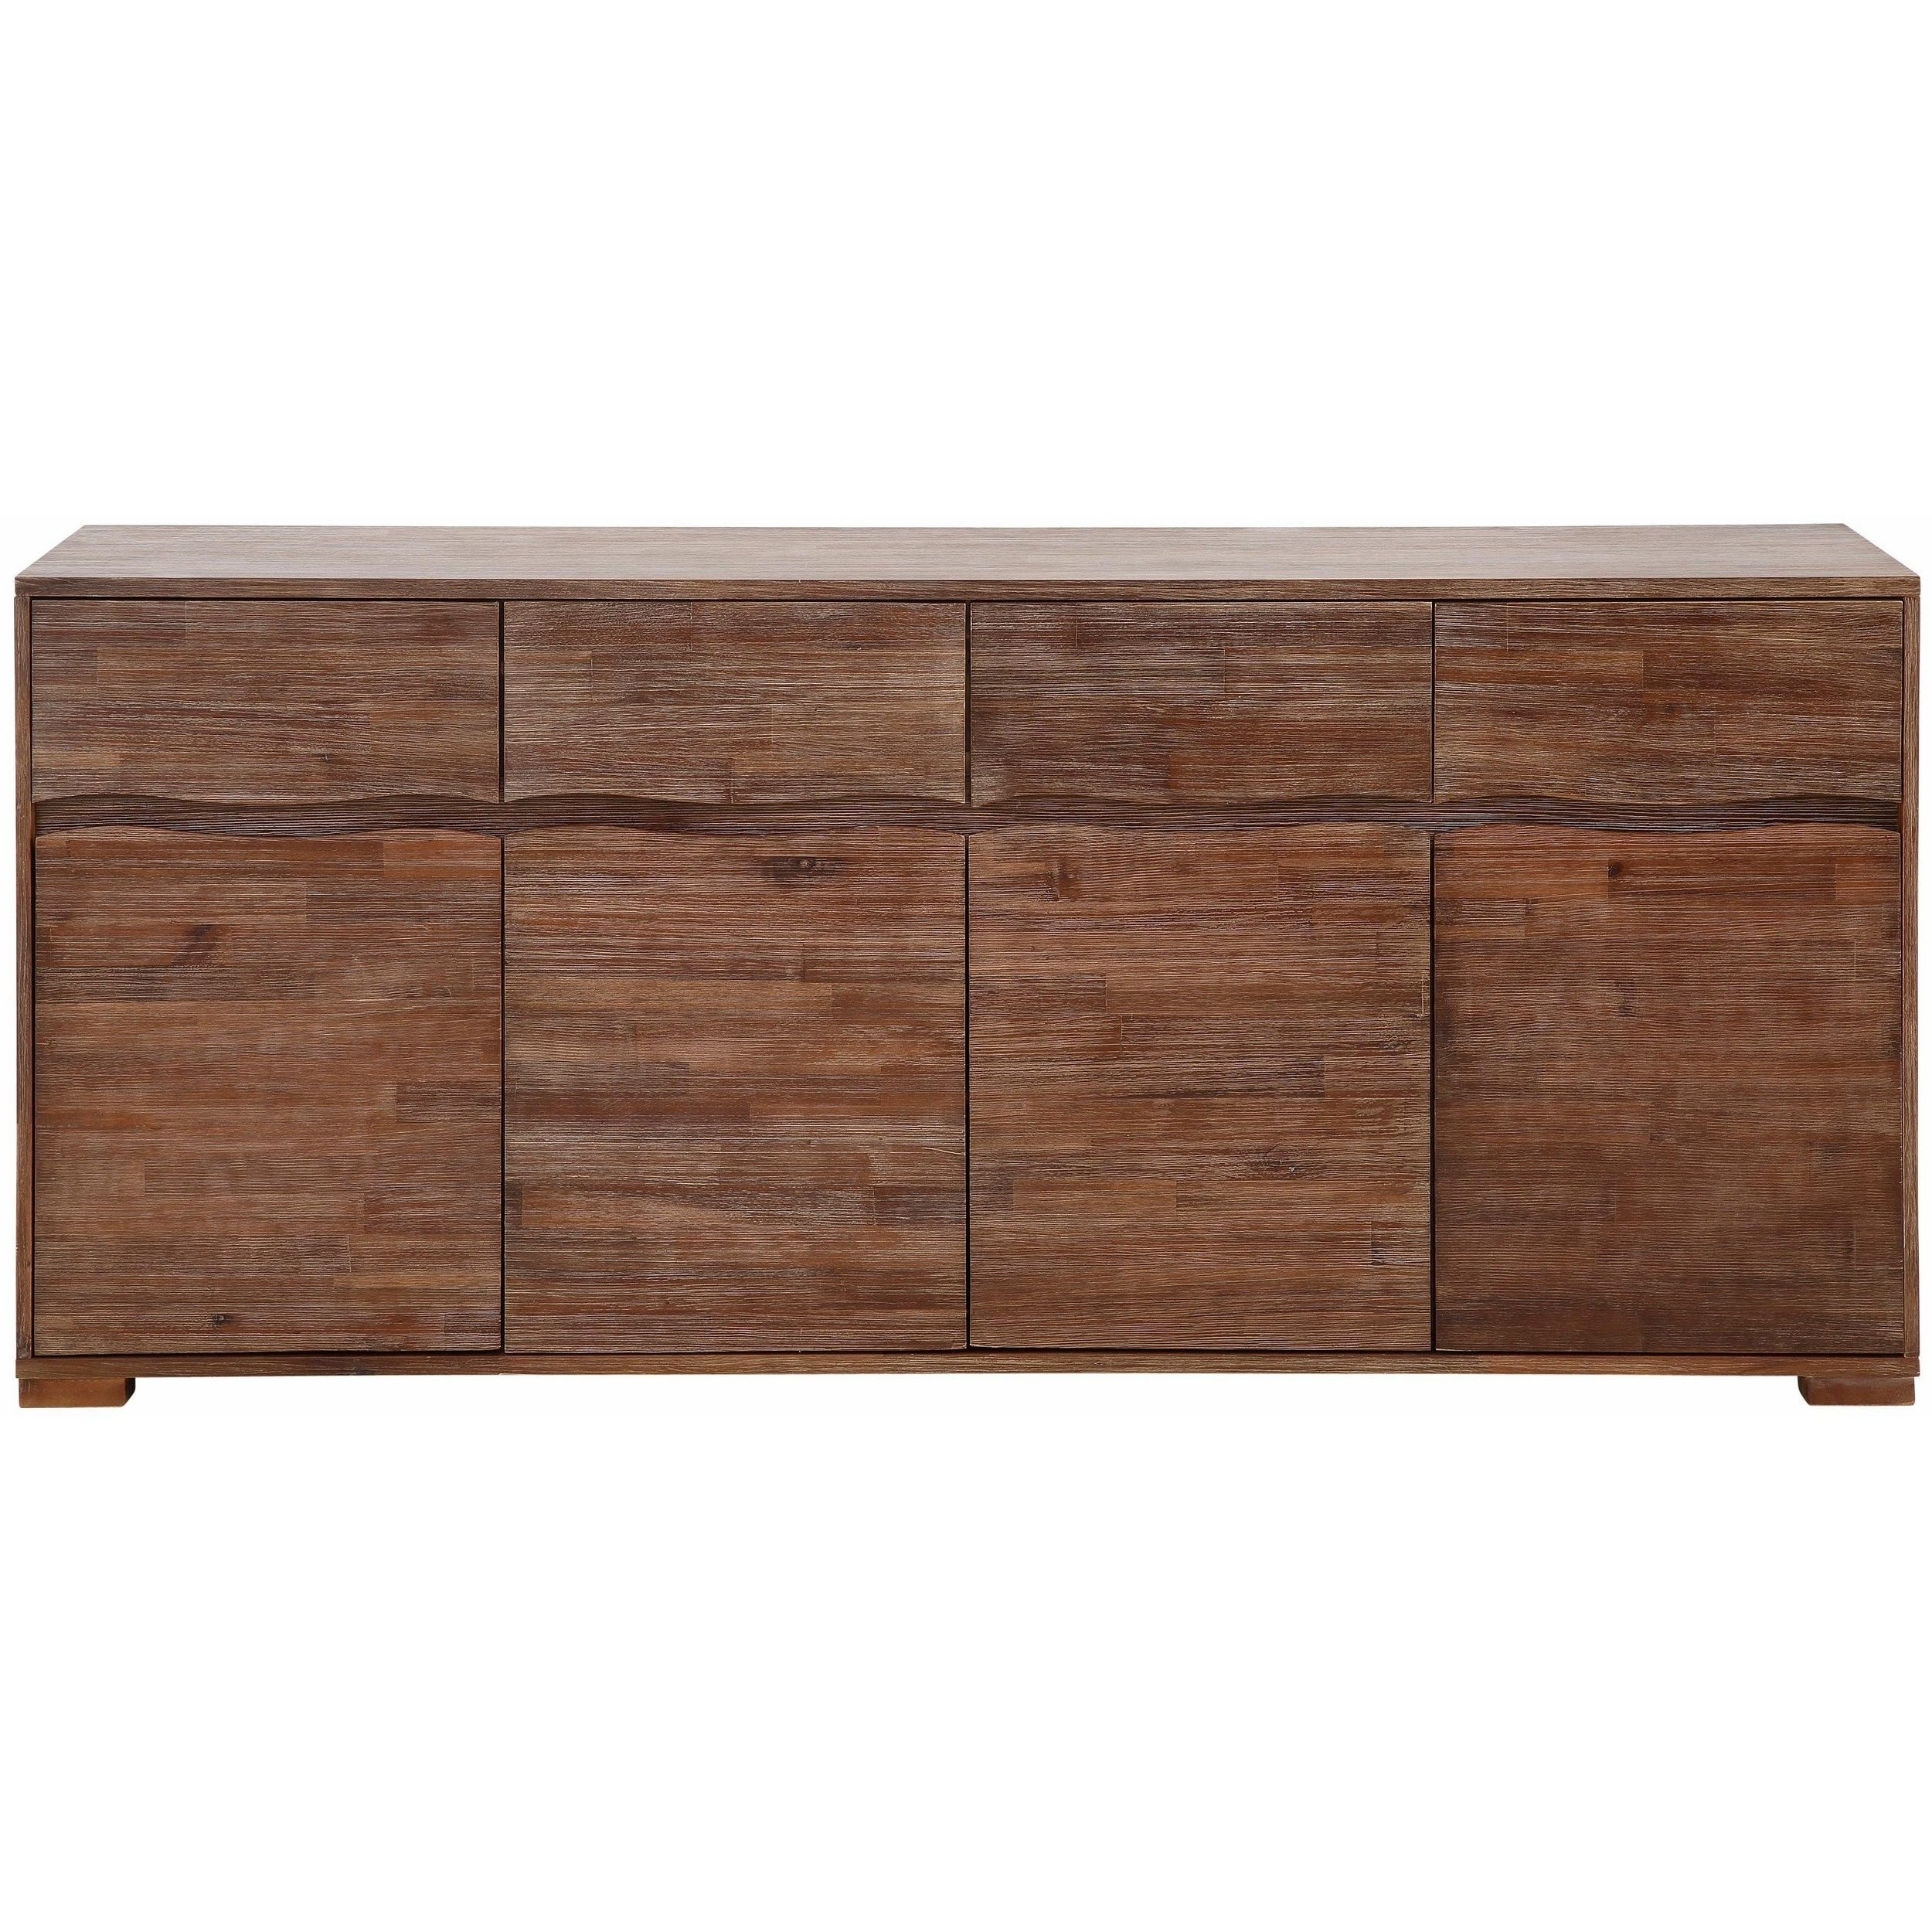 Shop Surf Sideboard With 4 Doors And 4 Drawers, Acacia Wood – On For Most Current Mango Wood Grey 4 Drawer 4 Door Sideboards (View 14 of 20)